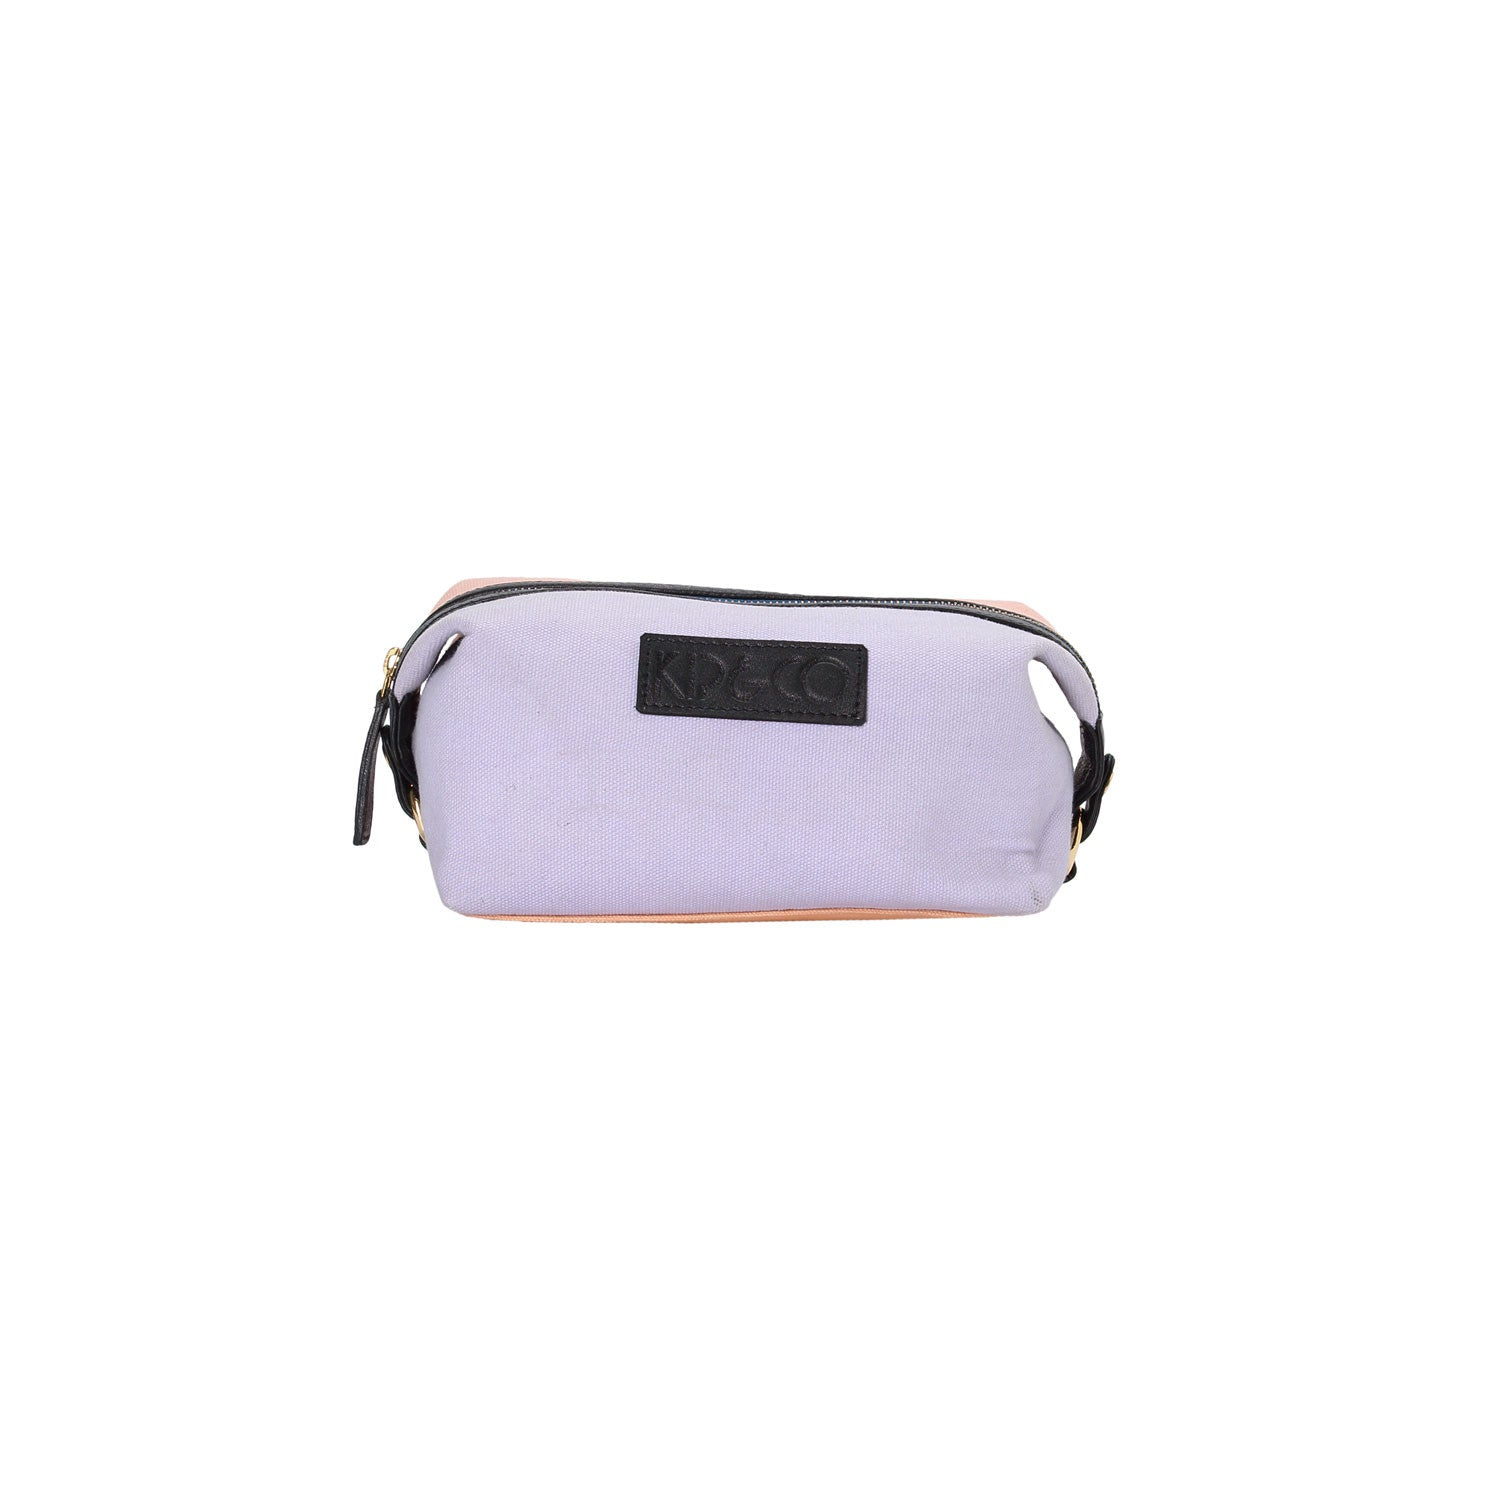 SS16 Spring Break Toiletry Bag